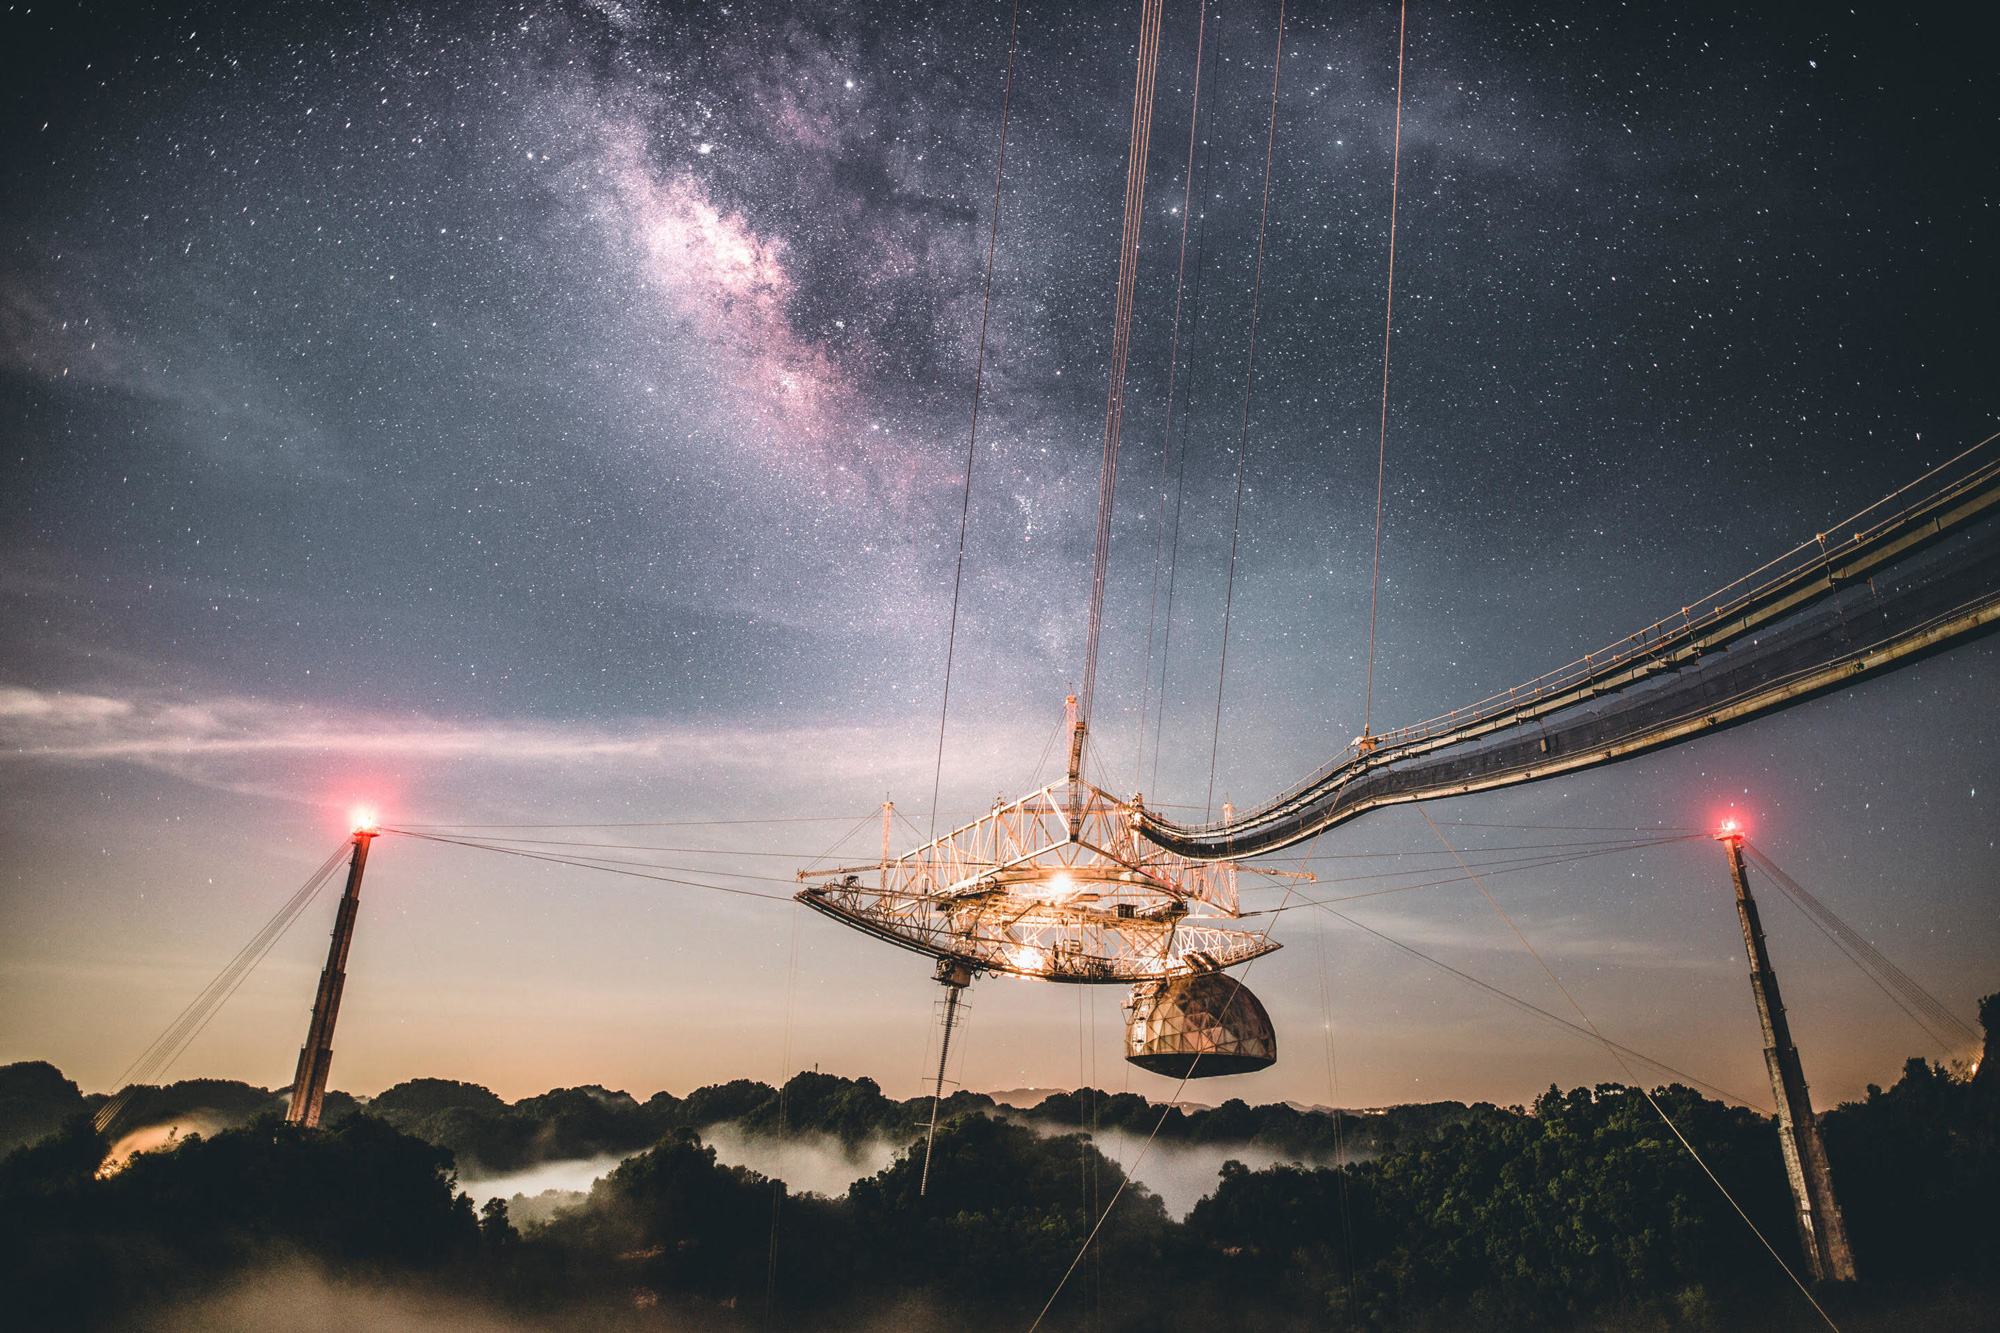 Photo of the Arecibo Observatory in Puerto Rico, with a starry night sky as background